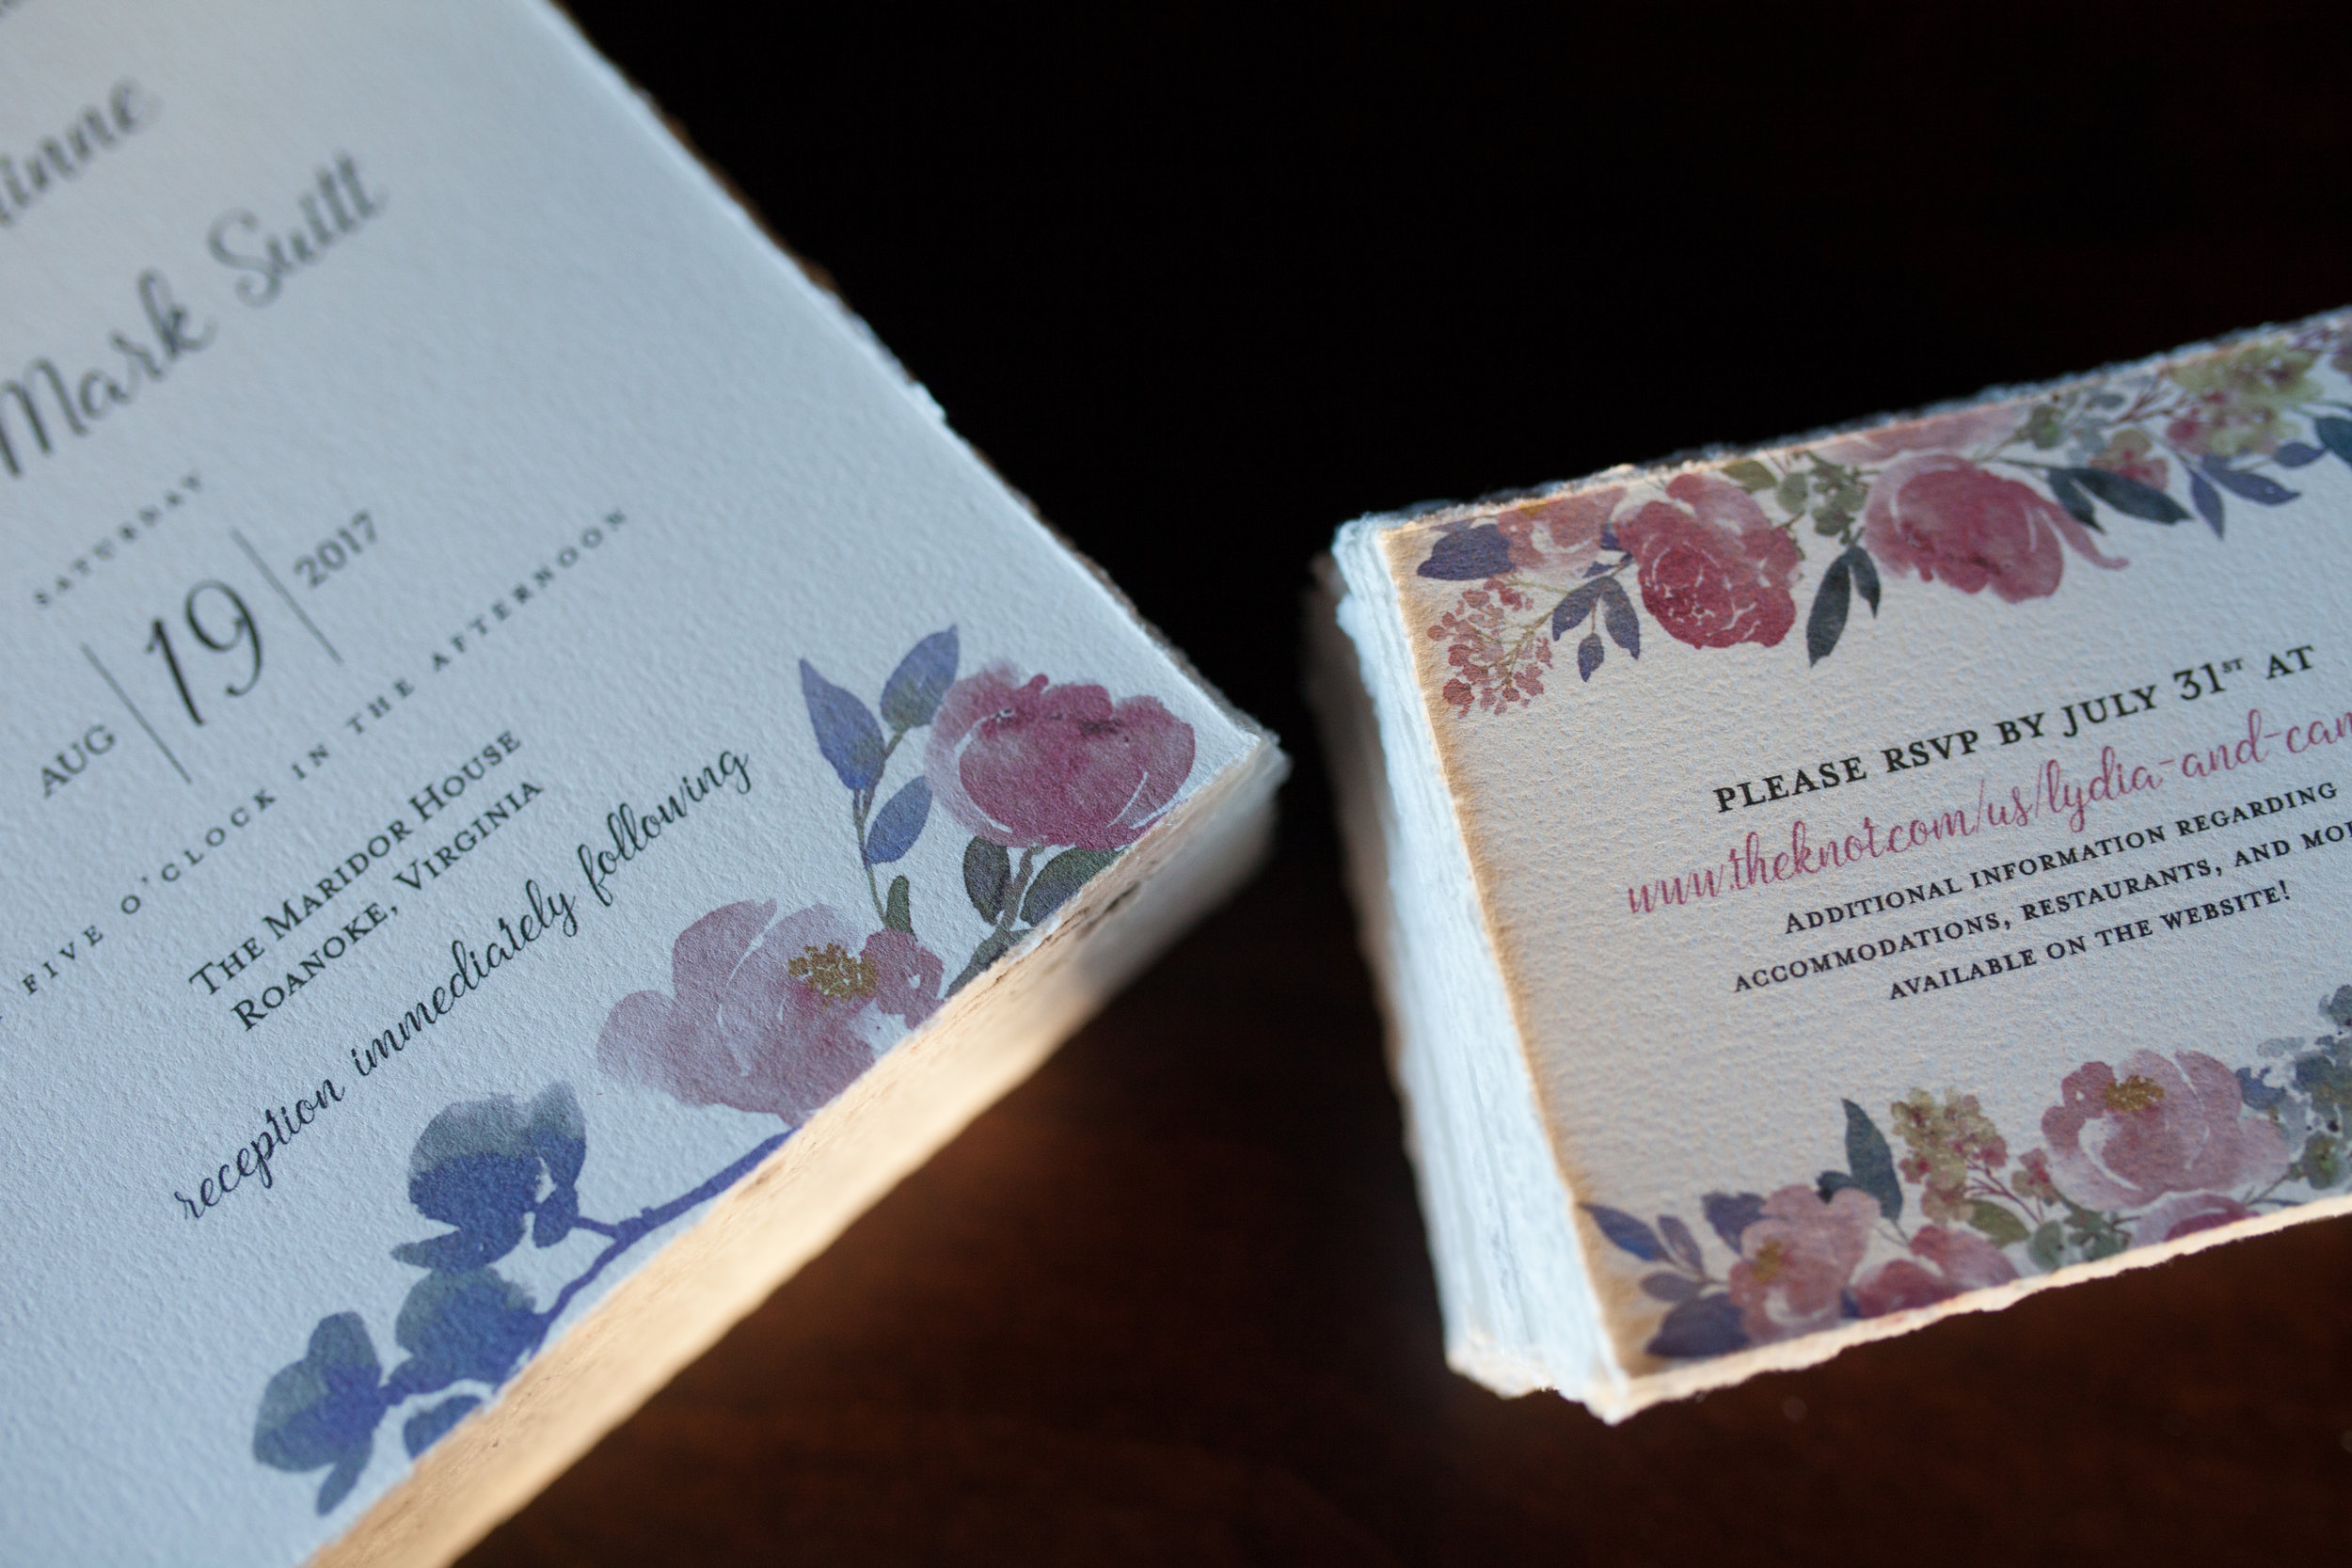 Lydia + Canaan - August 2017 — I was delighted to design these soft, elegant wedding invitations and RSVP cards for a dear friend and her now husband.